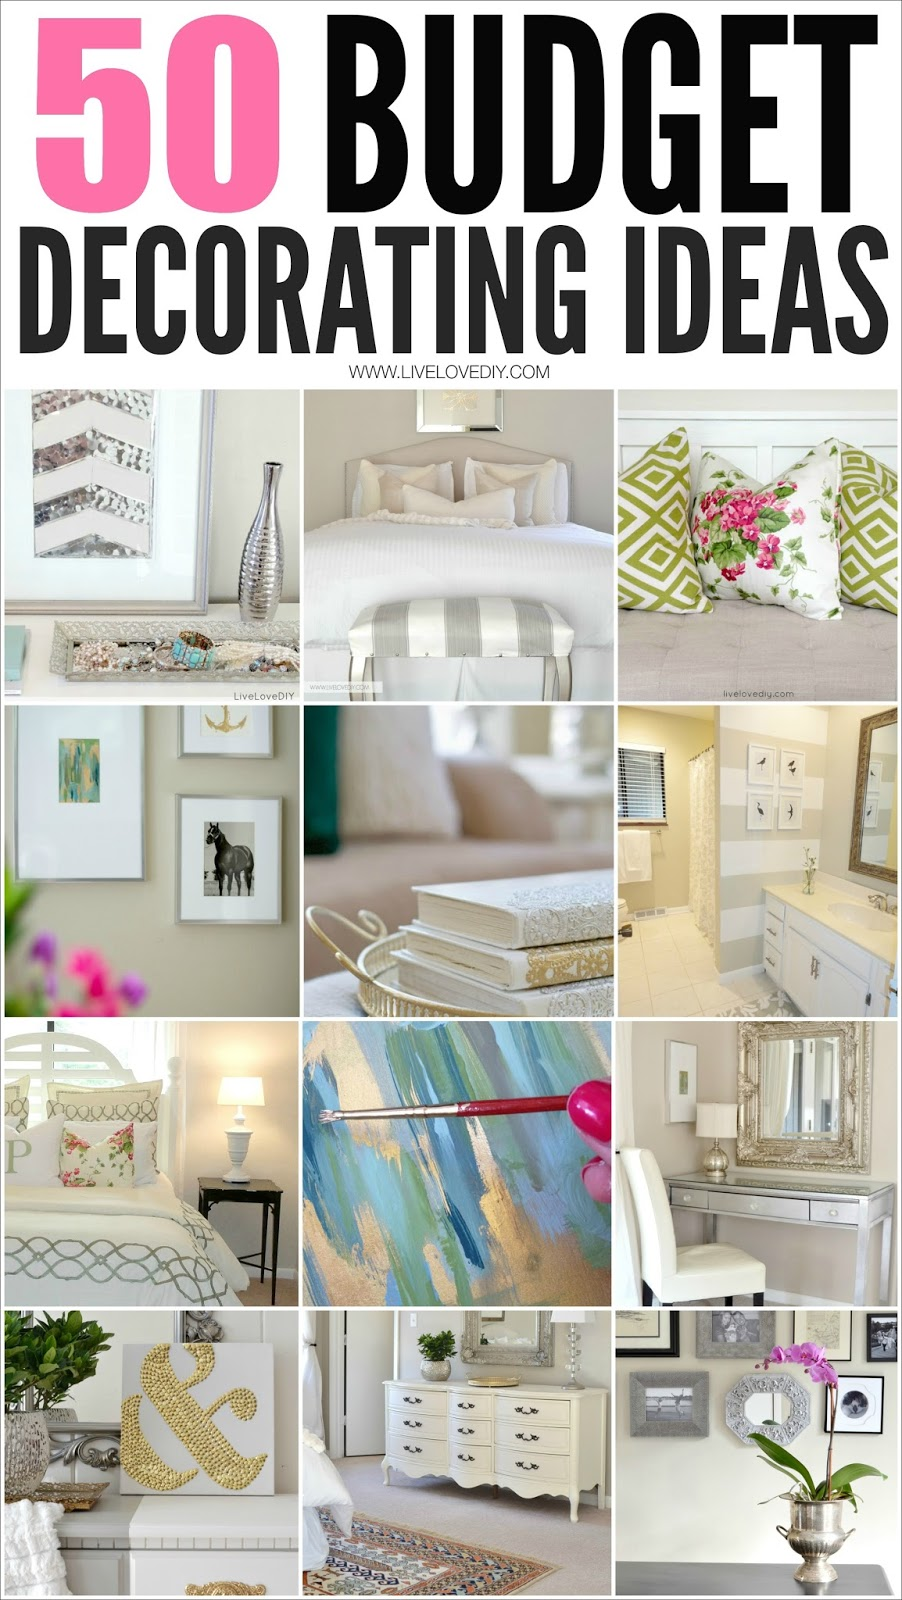 50 Amazing Budget Decorating Tips Everyone Should Know I Especially Love 4